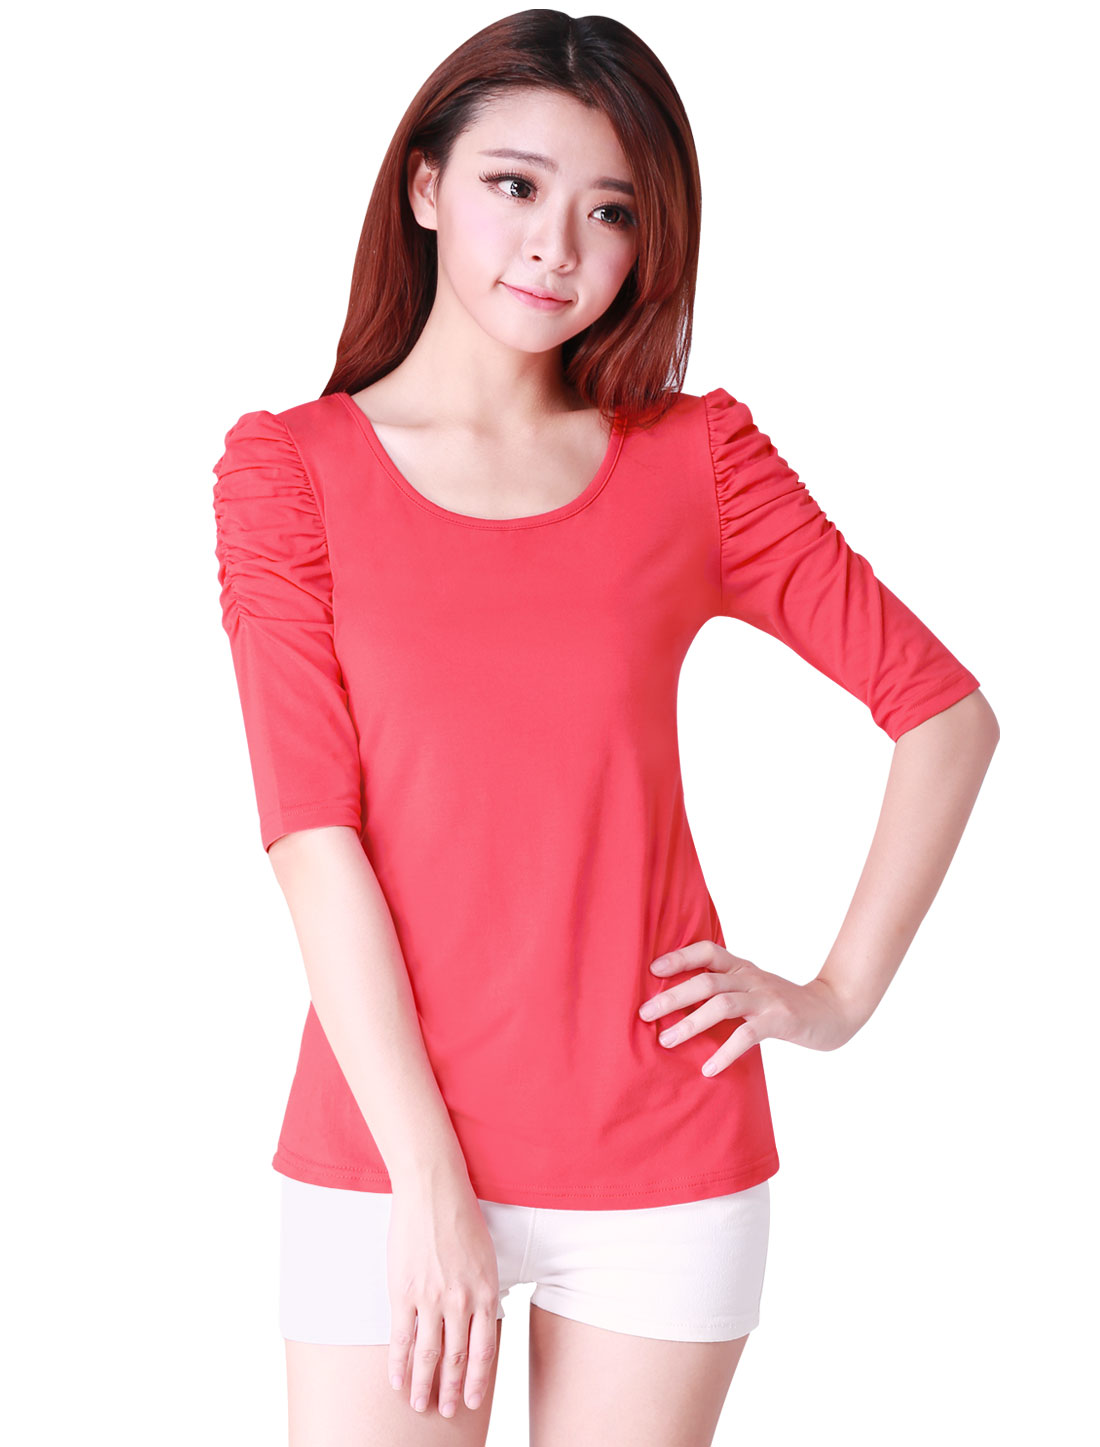 Watermelon Red Scoop Neck Ruched Half Sleeves Shirt for Woman XS